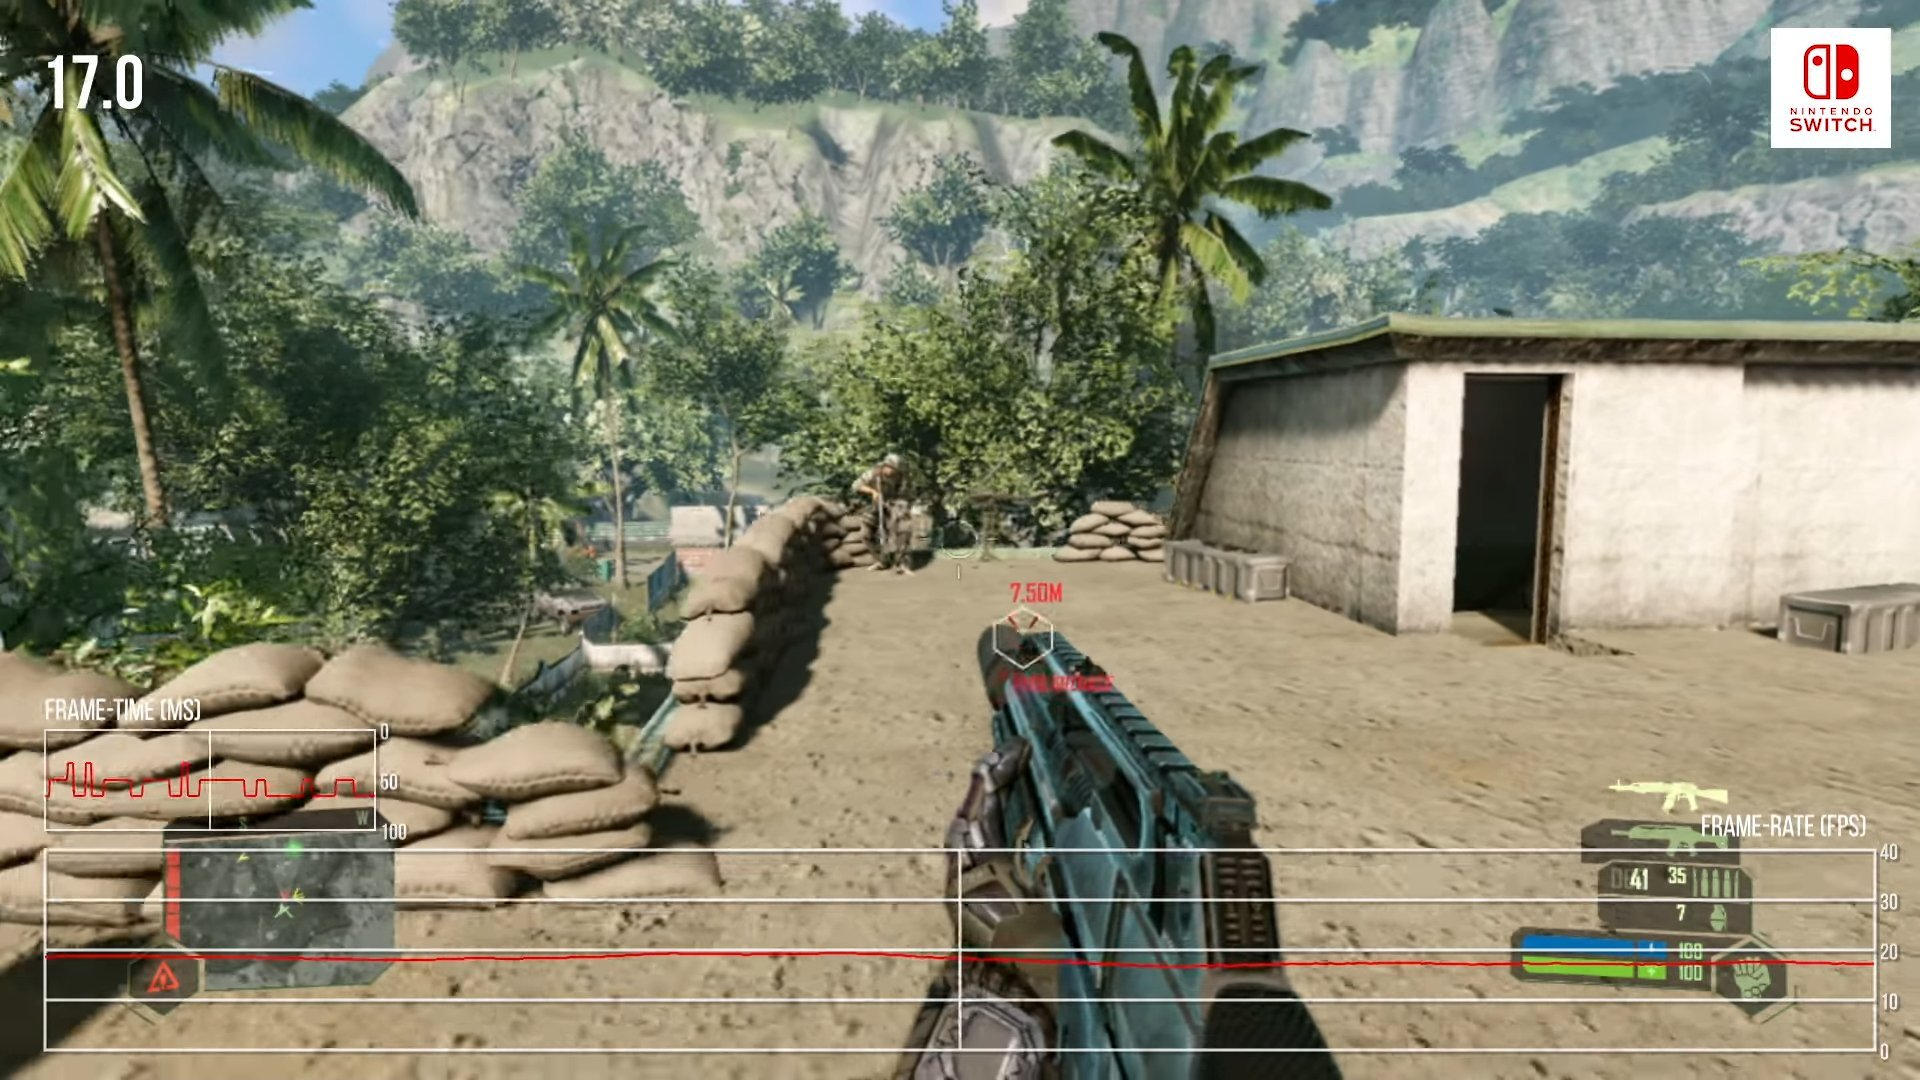 174544-Crysis%20Remastered%20on%20Switch